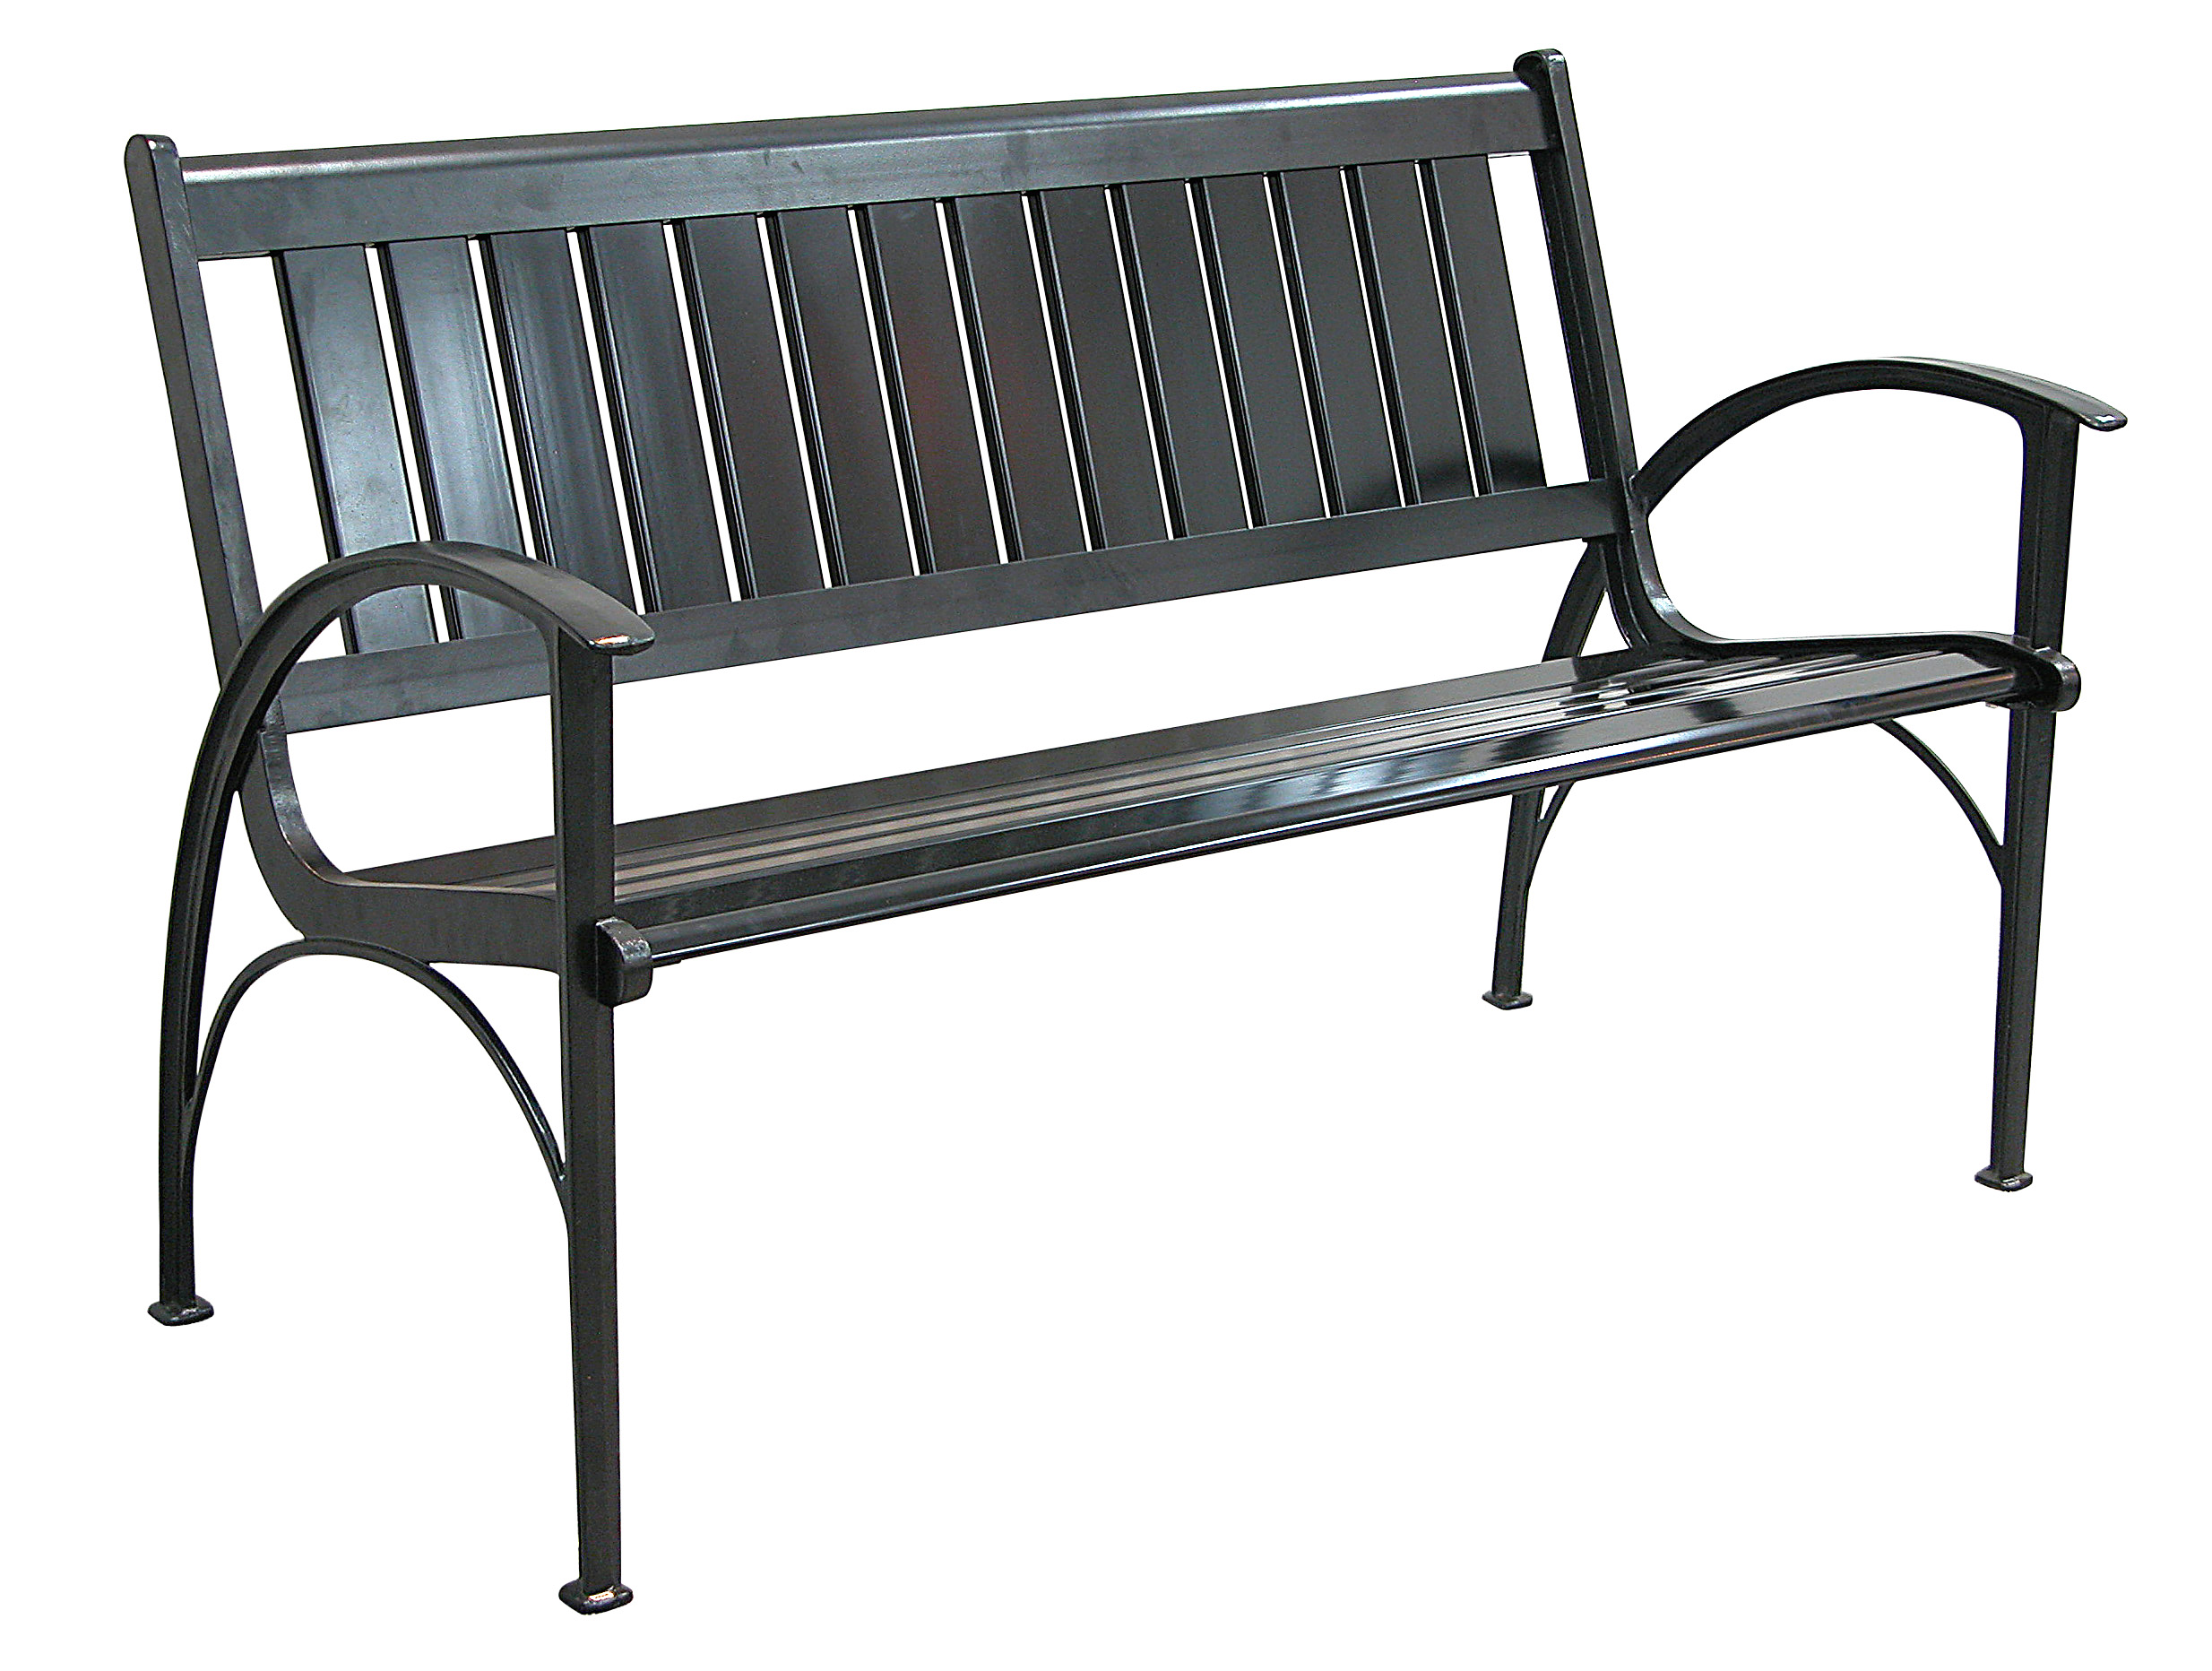 Patio furniture bench contemporary cast aluminum black Aluminum benches